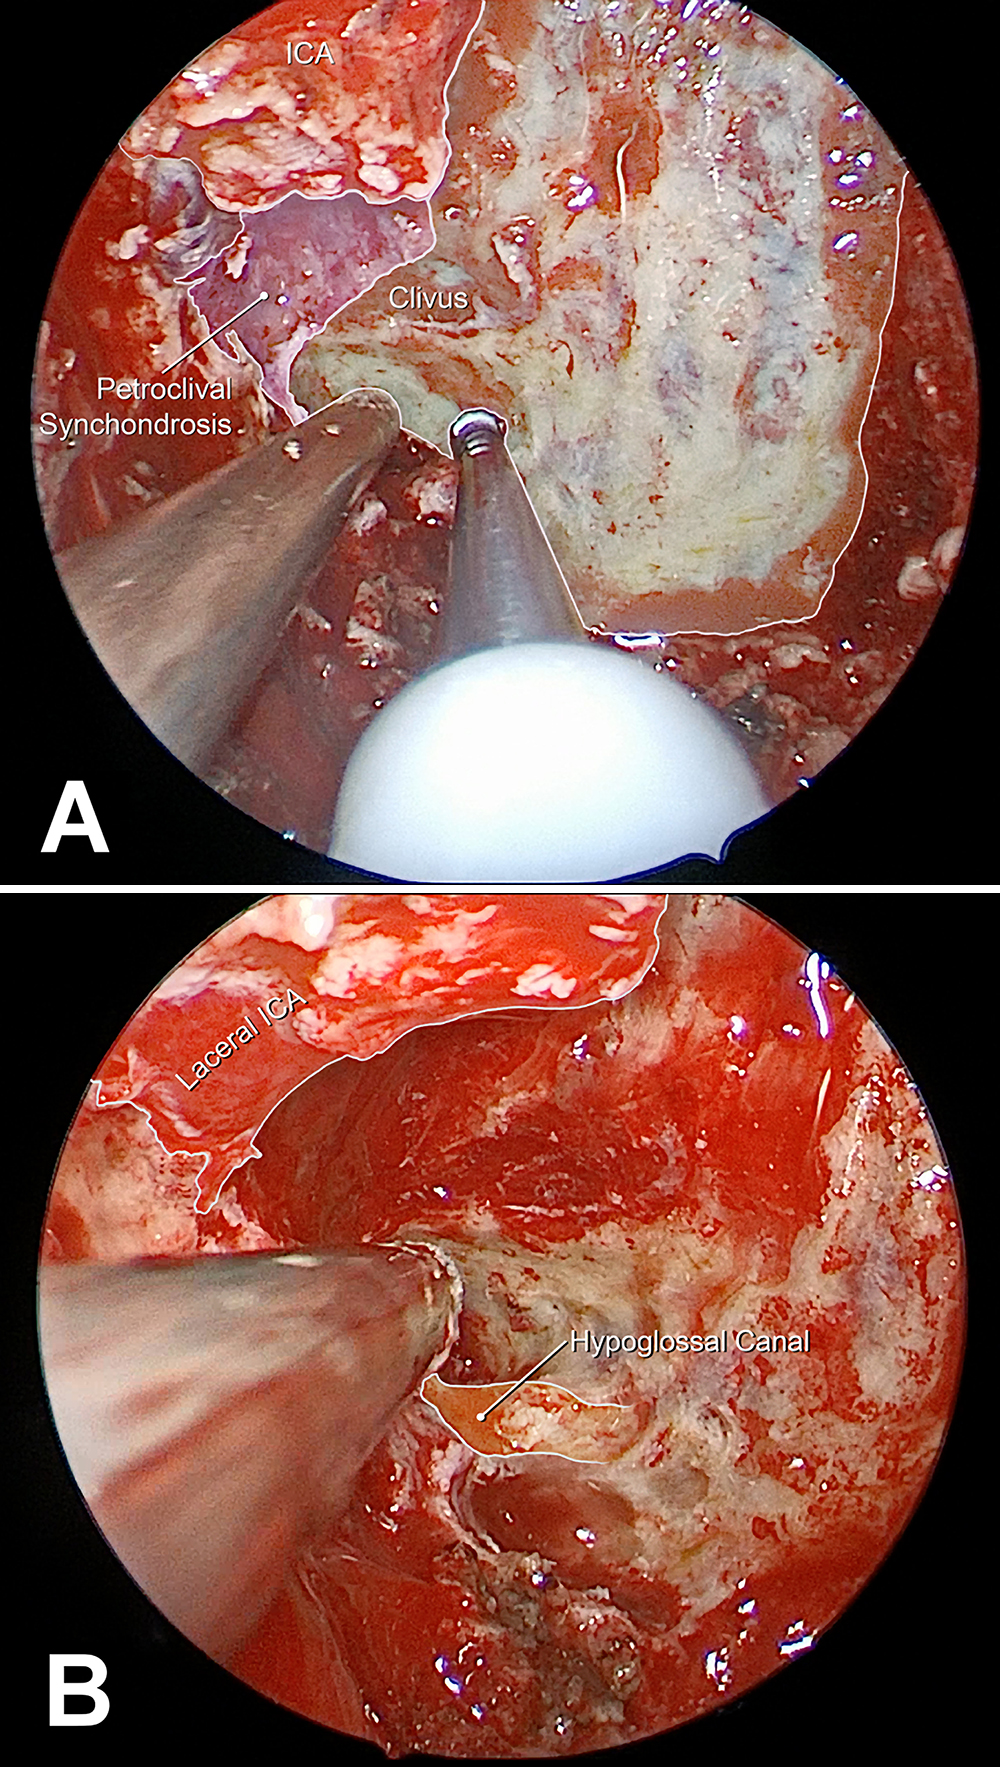 Endoscopic Endonasal Transpterygoid Transnasopharyngeal Management Of Petroclival Chondrosarcomas Without Medial Extension In Journal Of Neurosurgery Volume 131 Issue 1 2018 The xiphosternal synchondrosis is a cartilagionous joint between the body of sternum and the xiphoid process. endoscopic endonasal transpterygoid